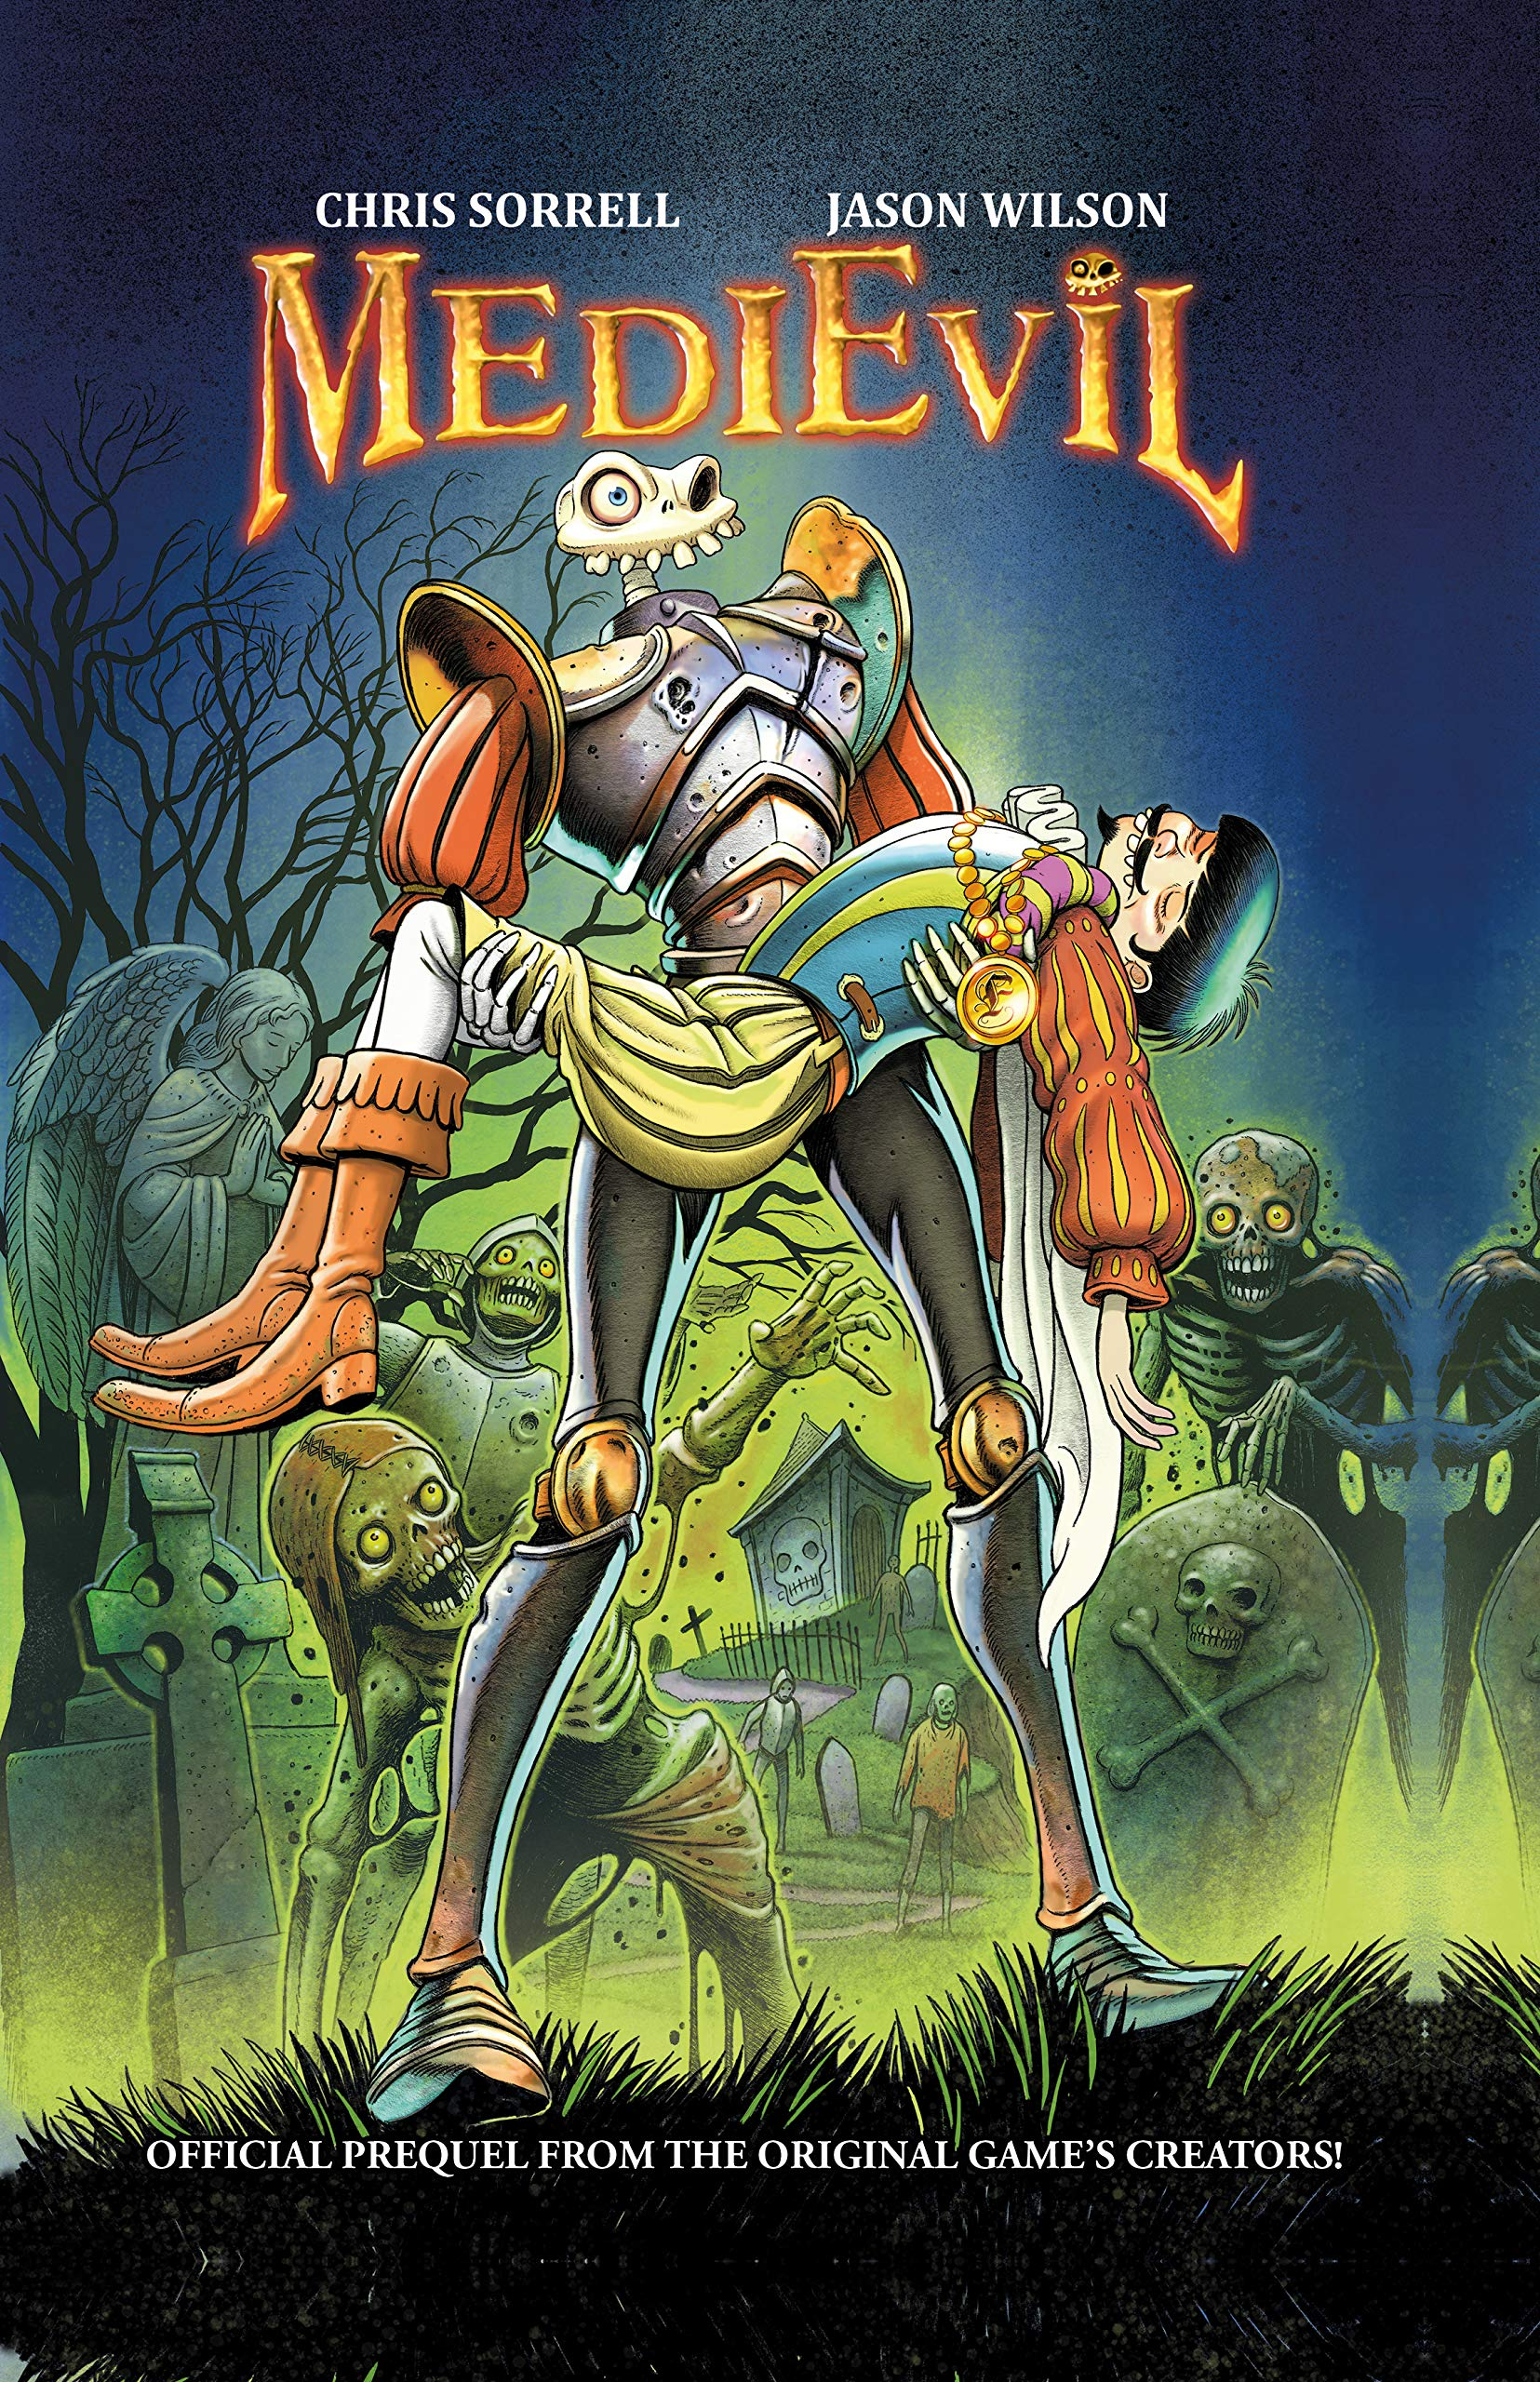 MediEvil: Fate's Arrow